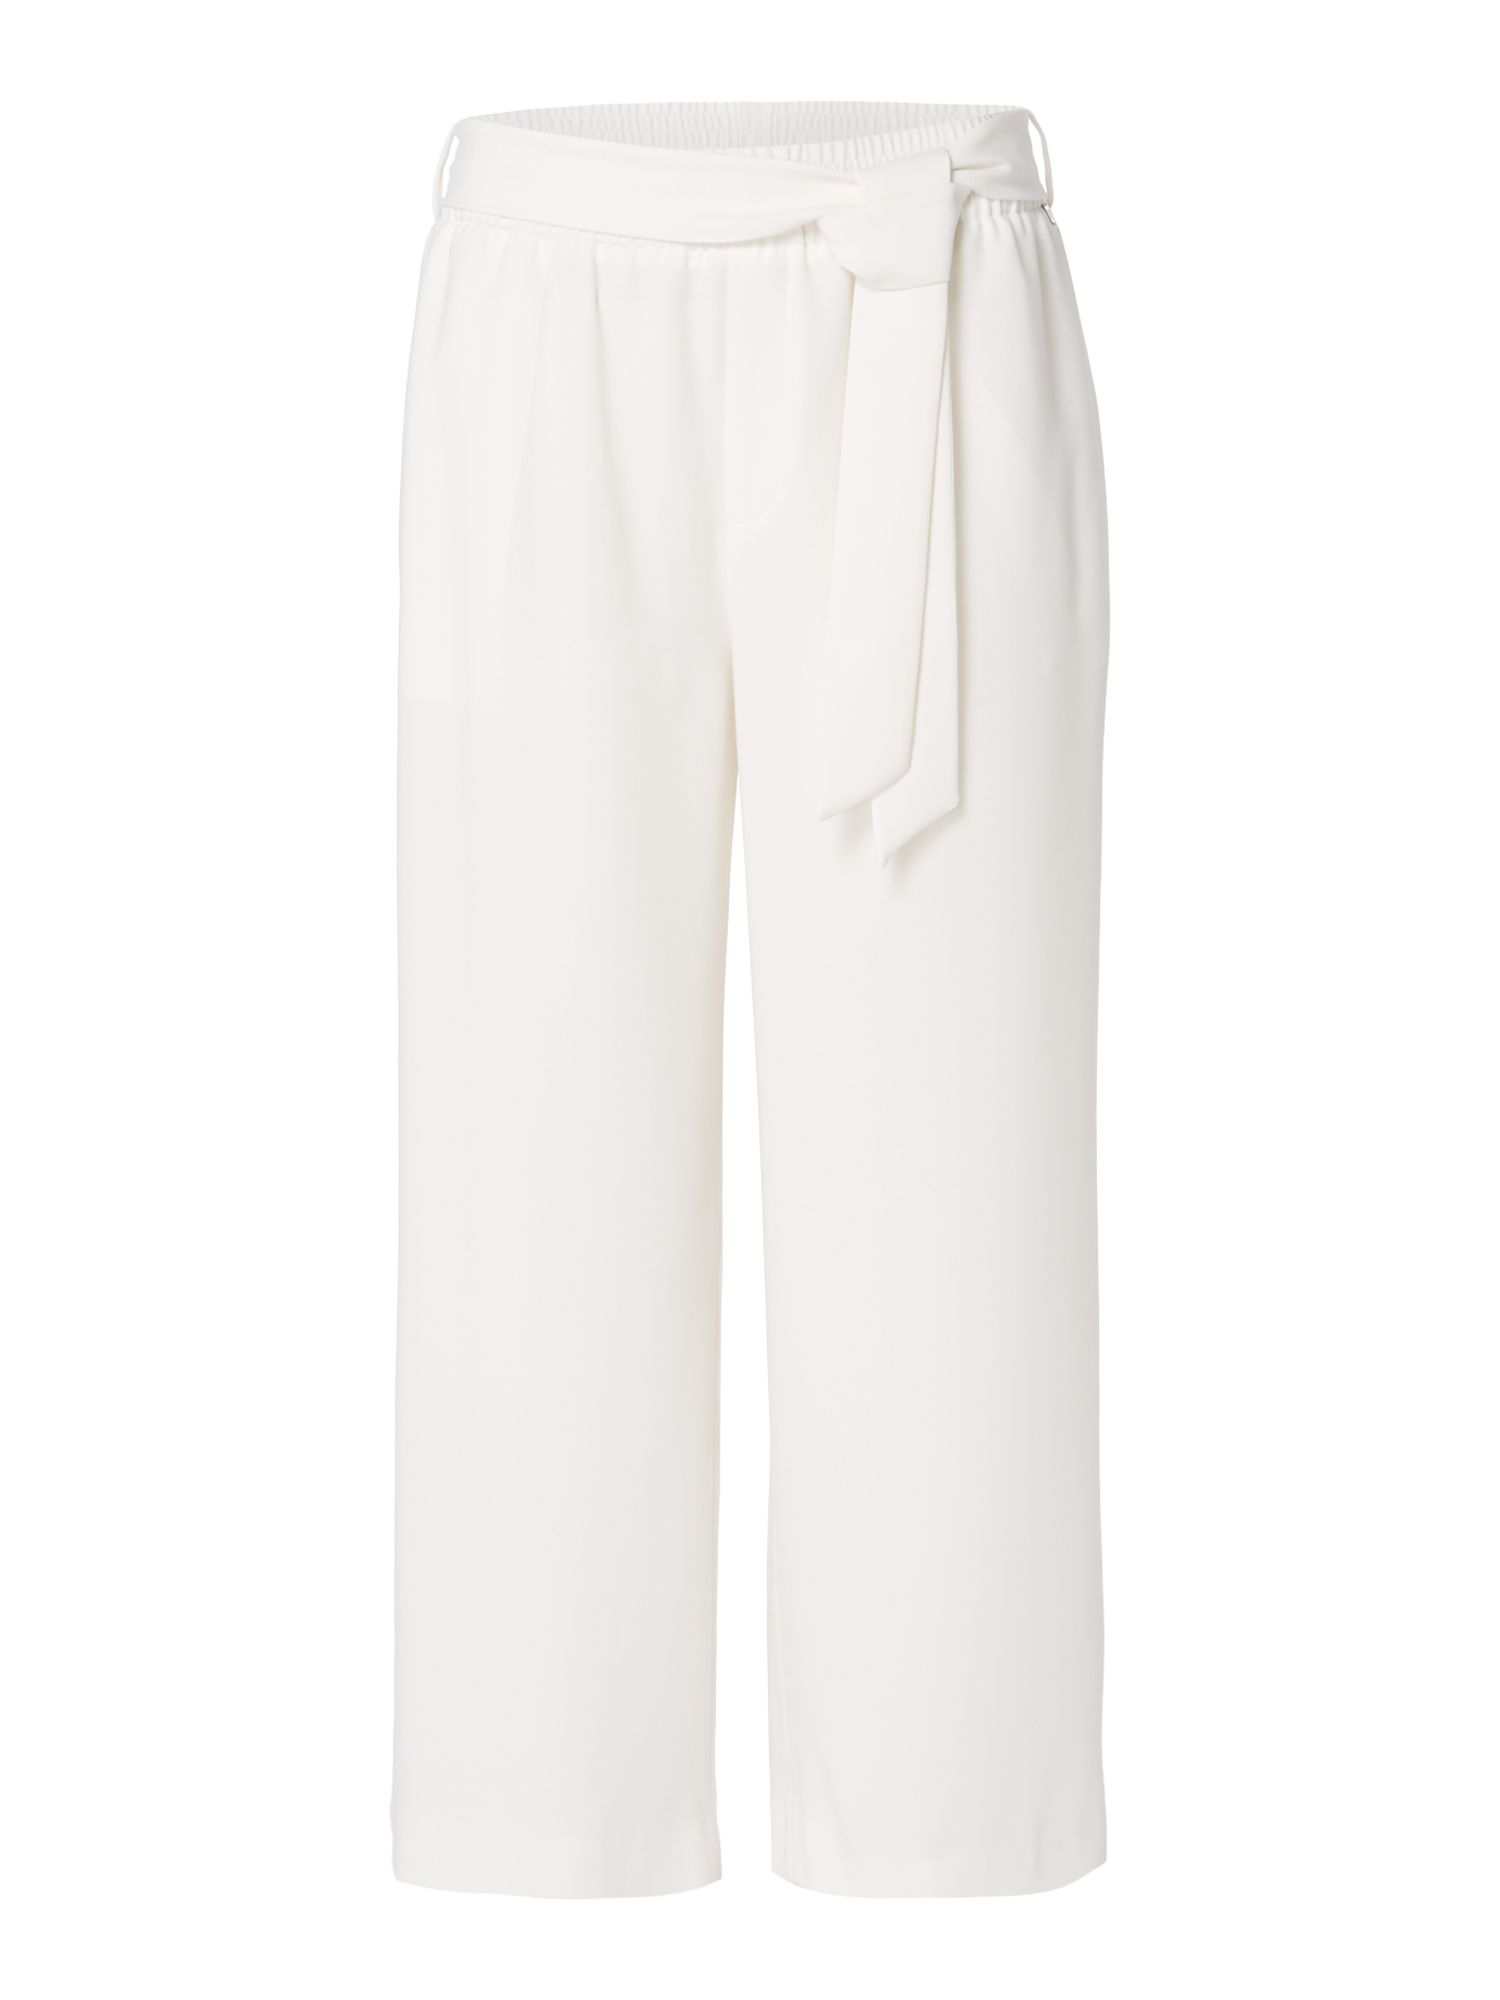 Biba Belted cropped trouser, White